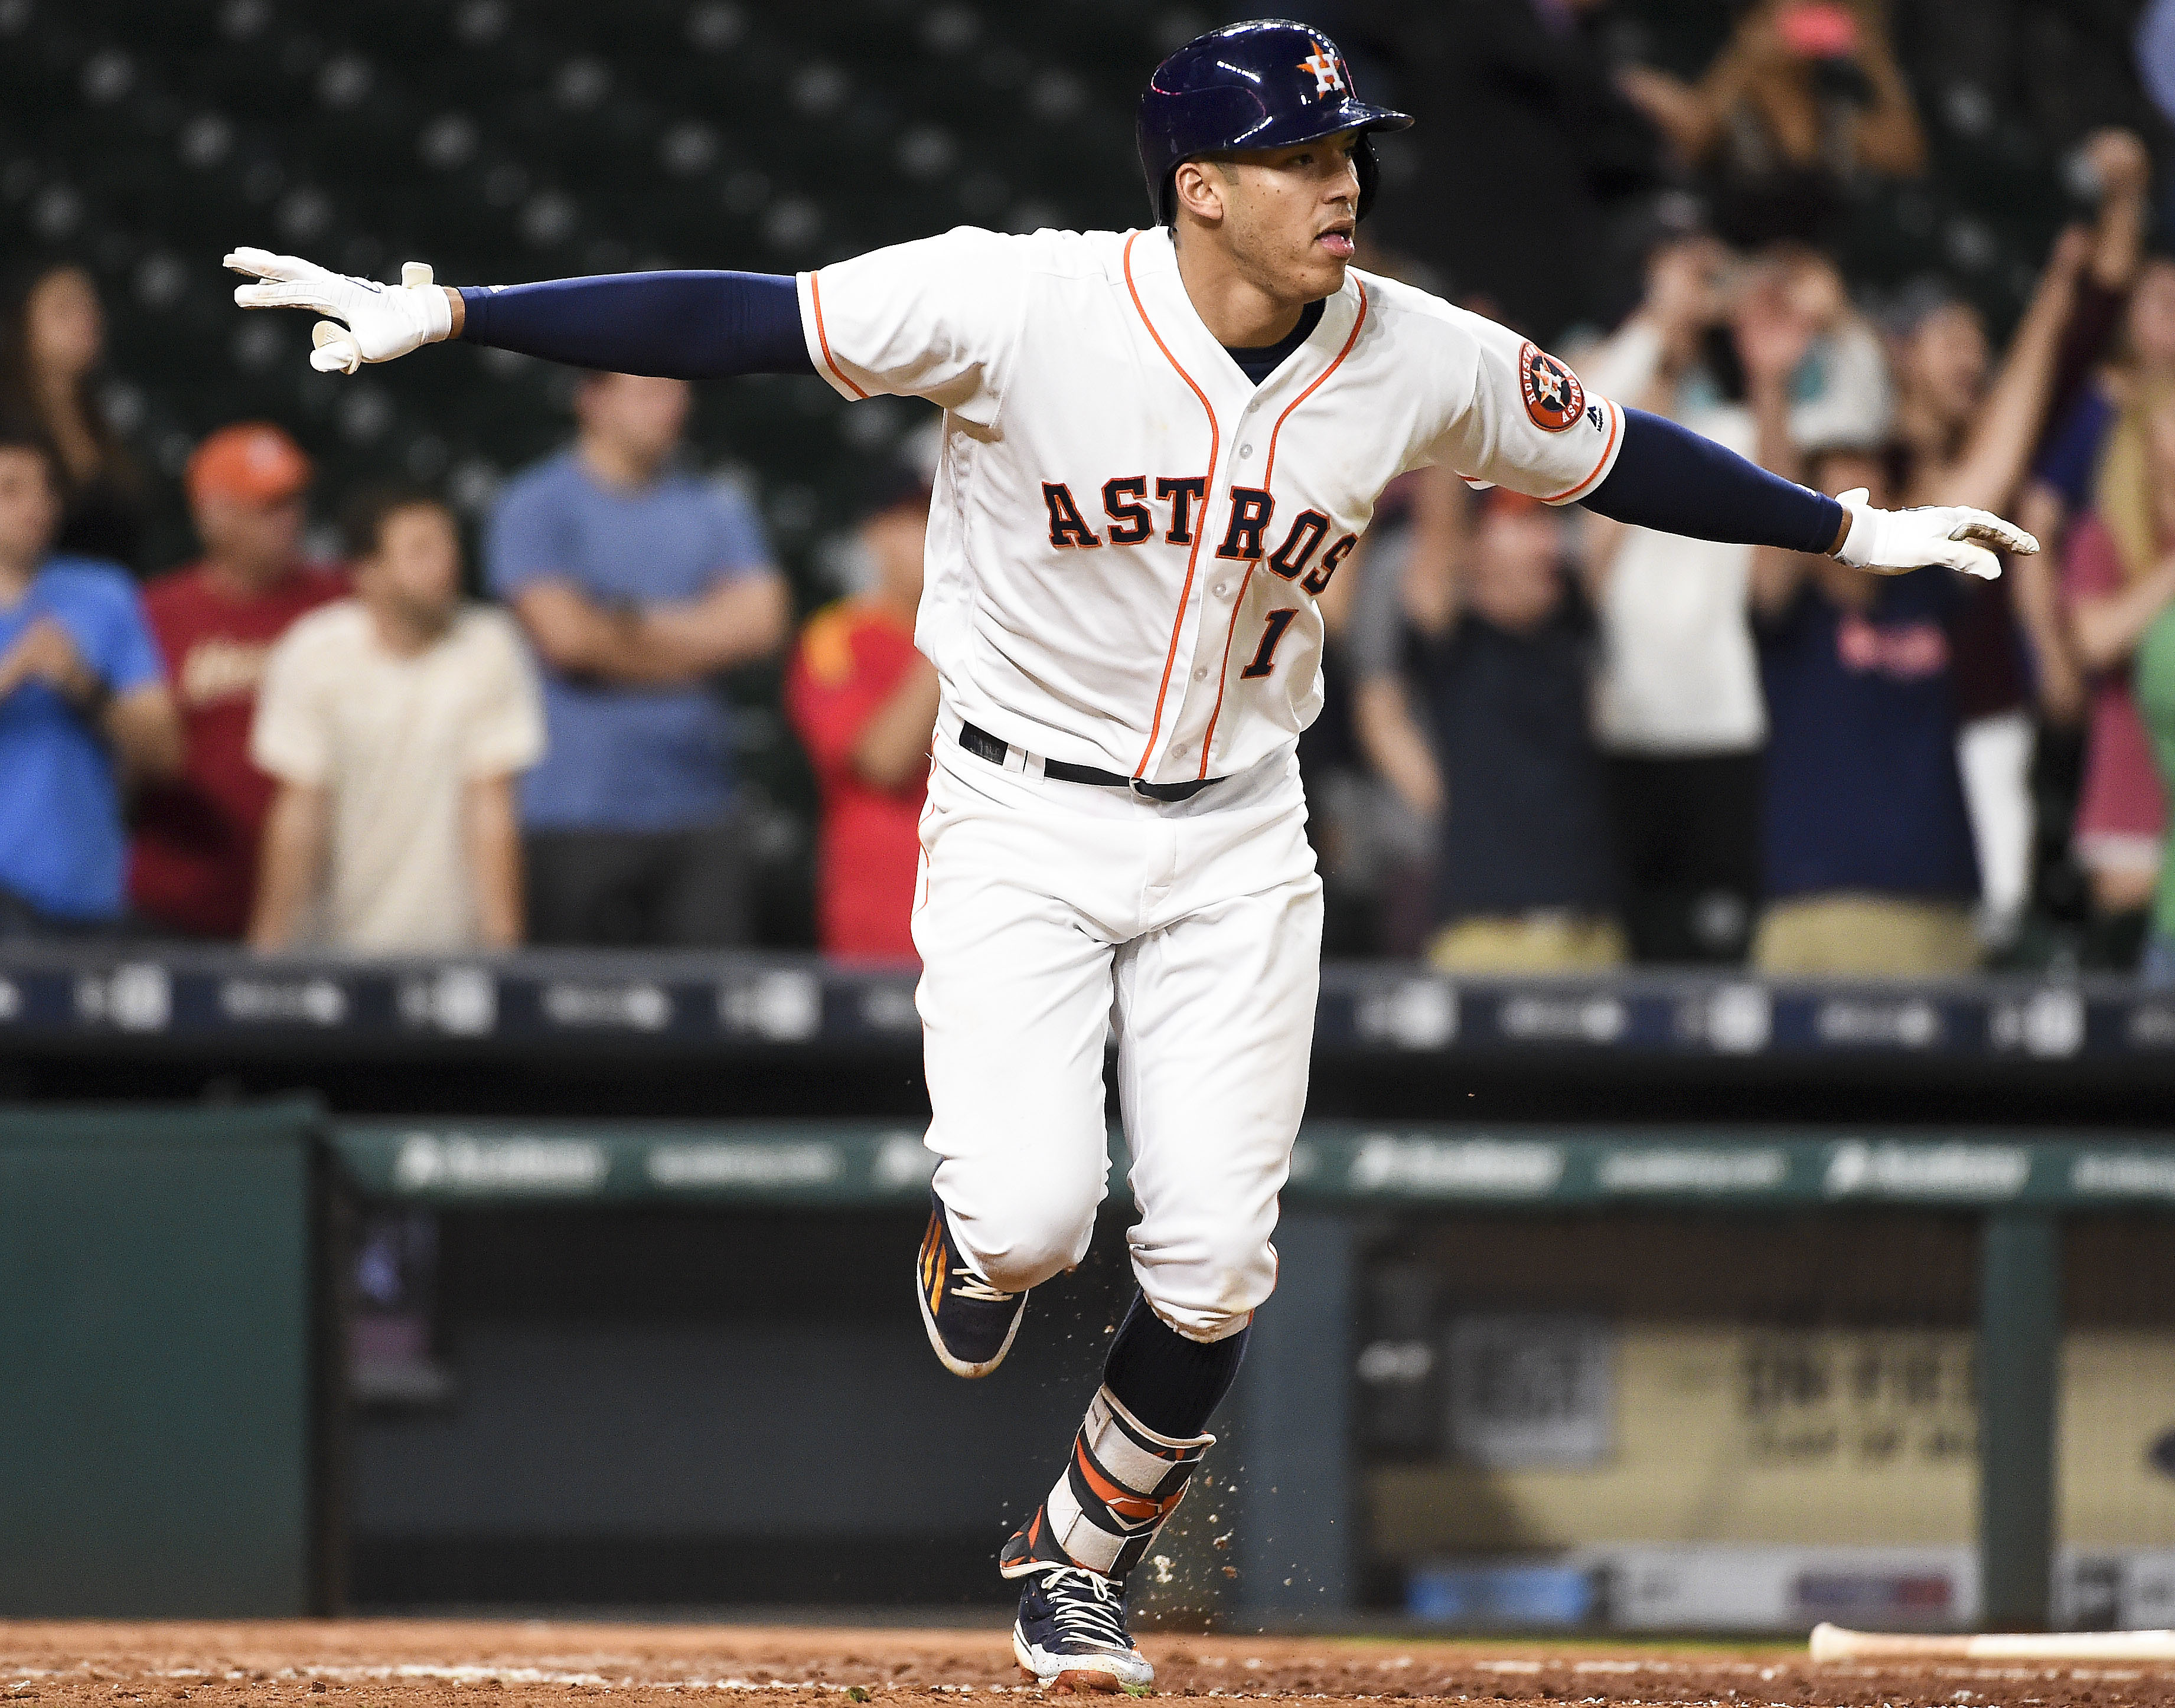 Houston Astros' Carlos Correa (1) gestures after hitting the game-winning RBI single during the 13th inning of a baseball game against the Baltimore Orioles, Tuesday, May 24, 2016, in Houston. Houston won 3-2. (AP Photo/Eric Christian Smith)